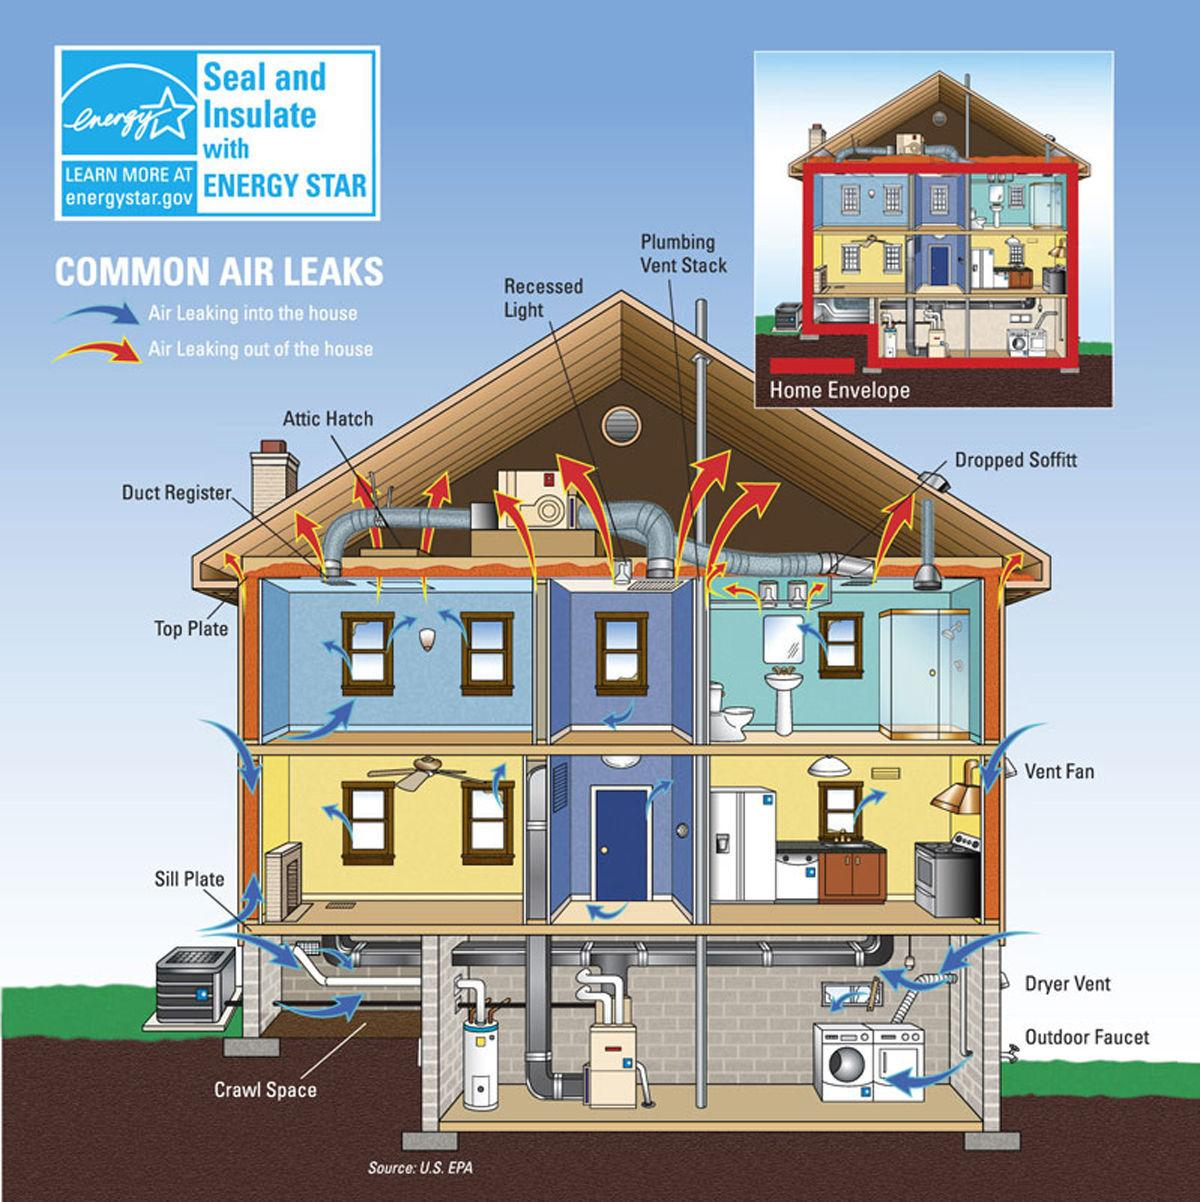 Seal and insulate home diagram